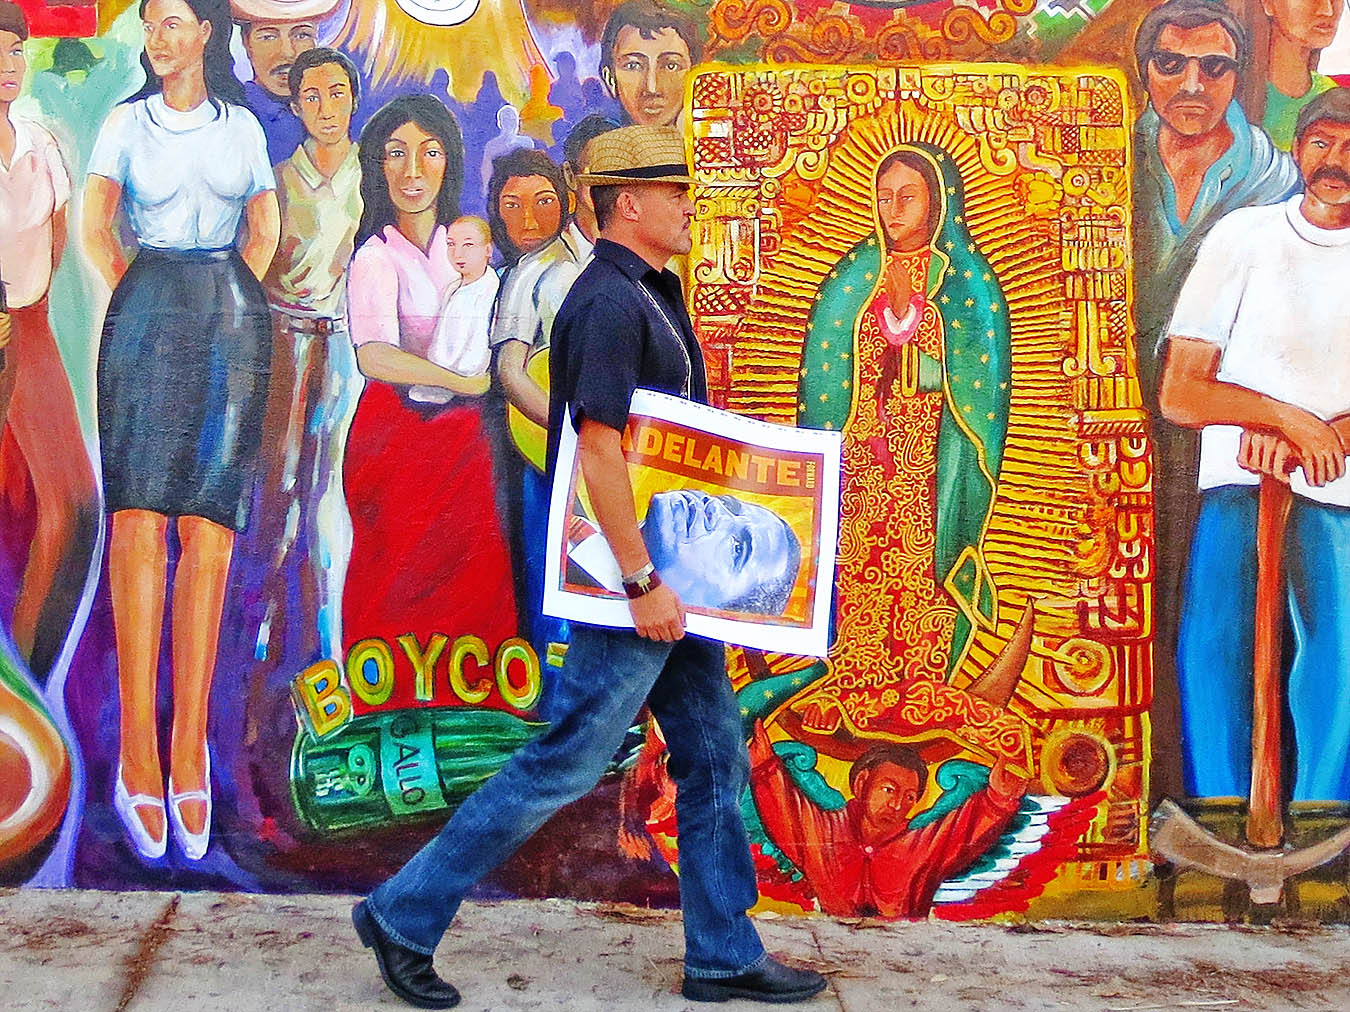 Los angeles murals chicano mural art mural world for Chicano mural art